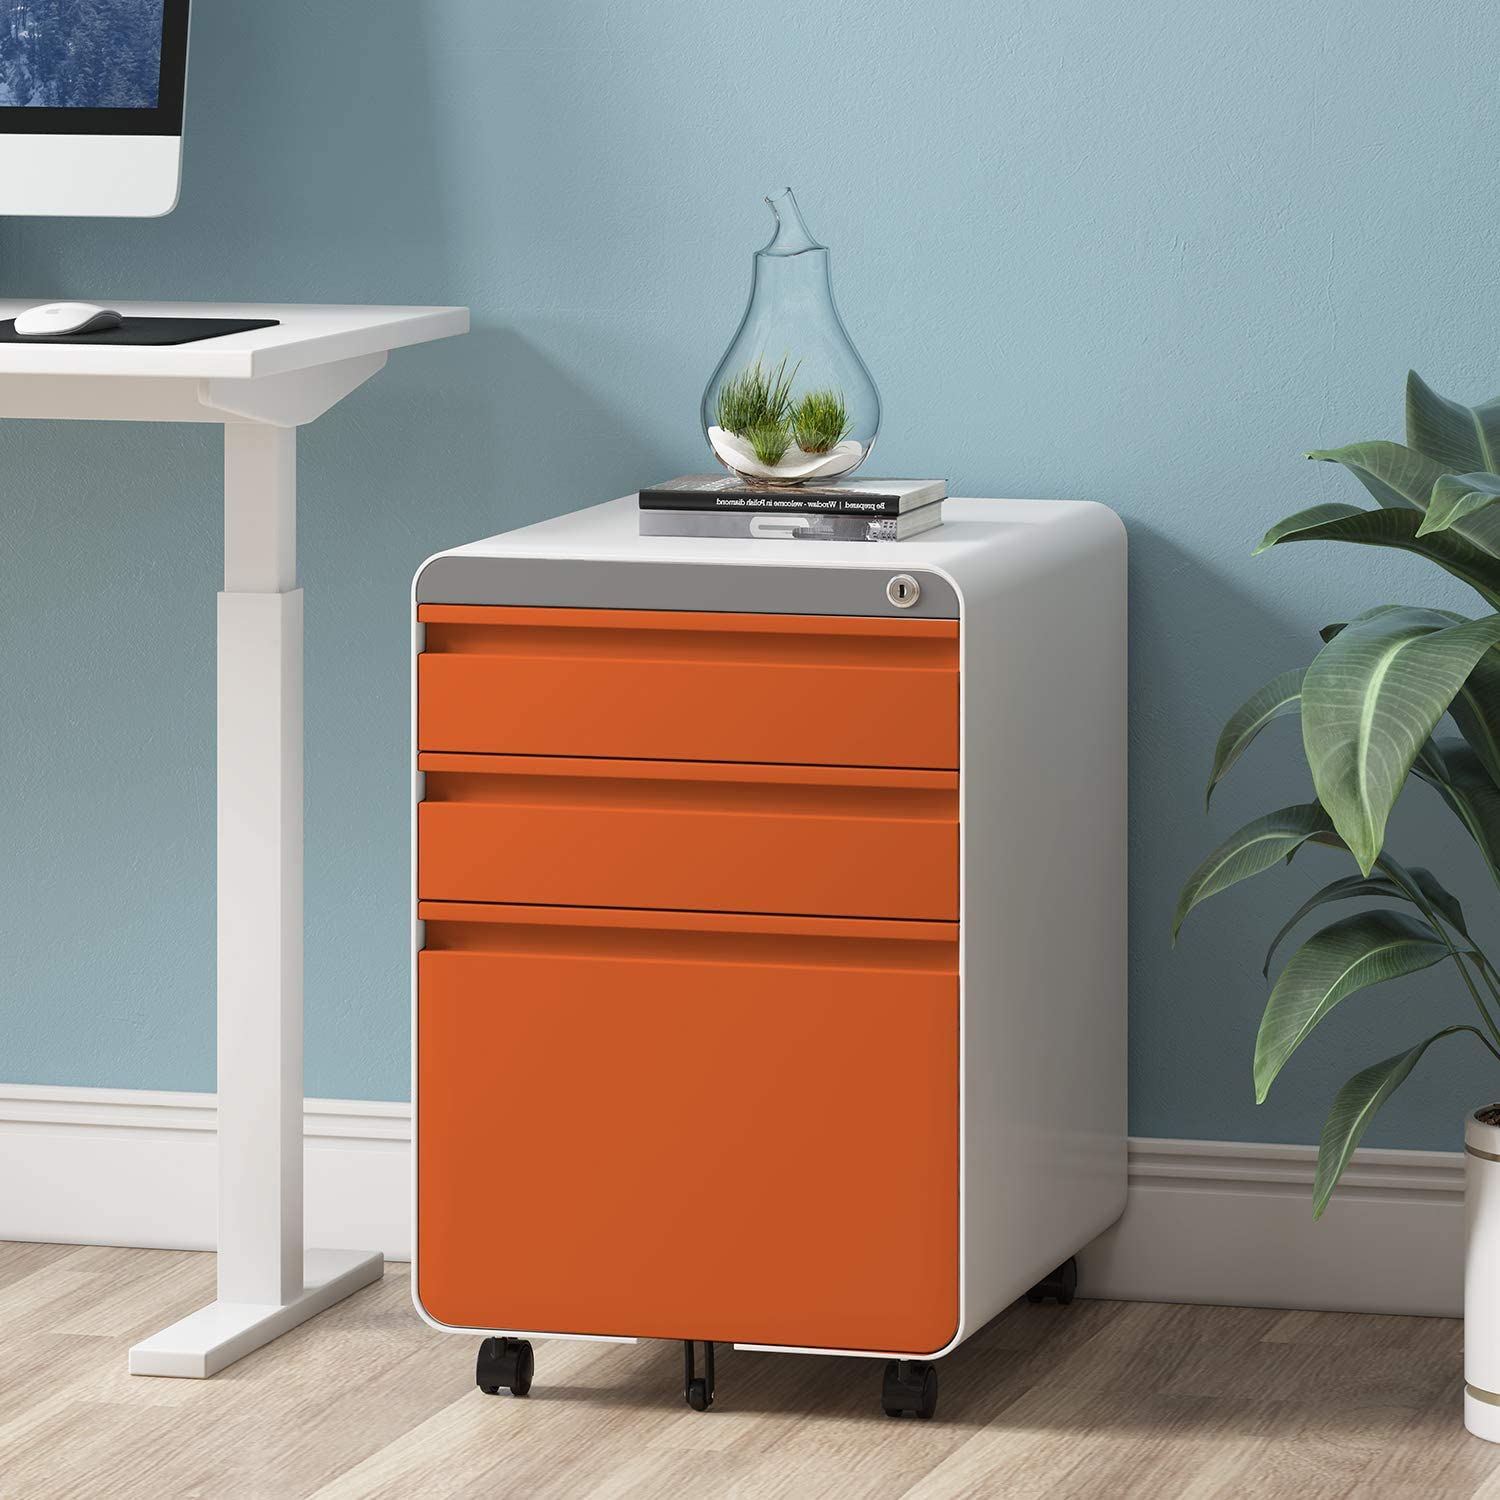 Dprodo 3 Drawers Mobile File Cabinet with Lock, Metal Filing Cabinet for Legal & Letter Size, Fully Assembled Locking File Cabinet for Home & Office,Orange